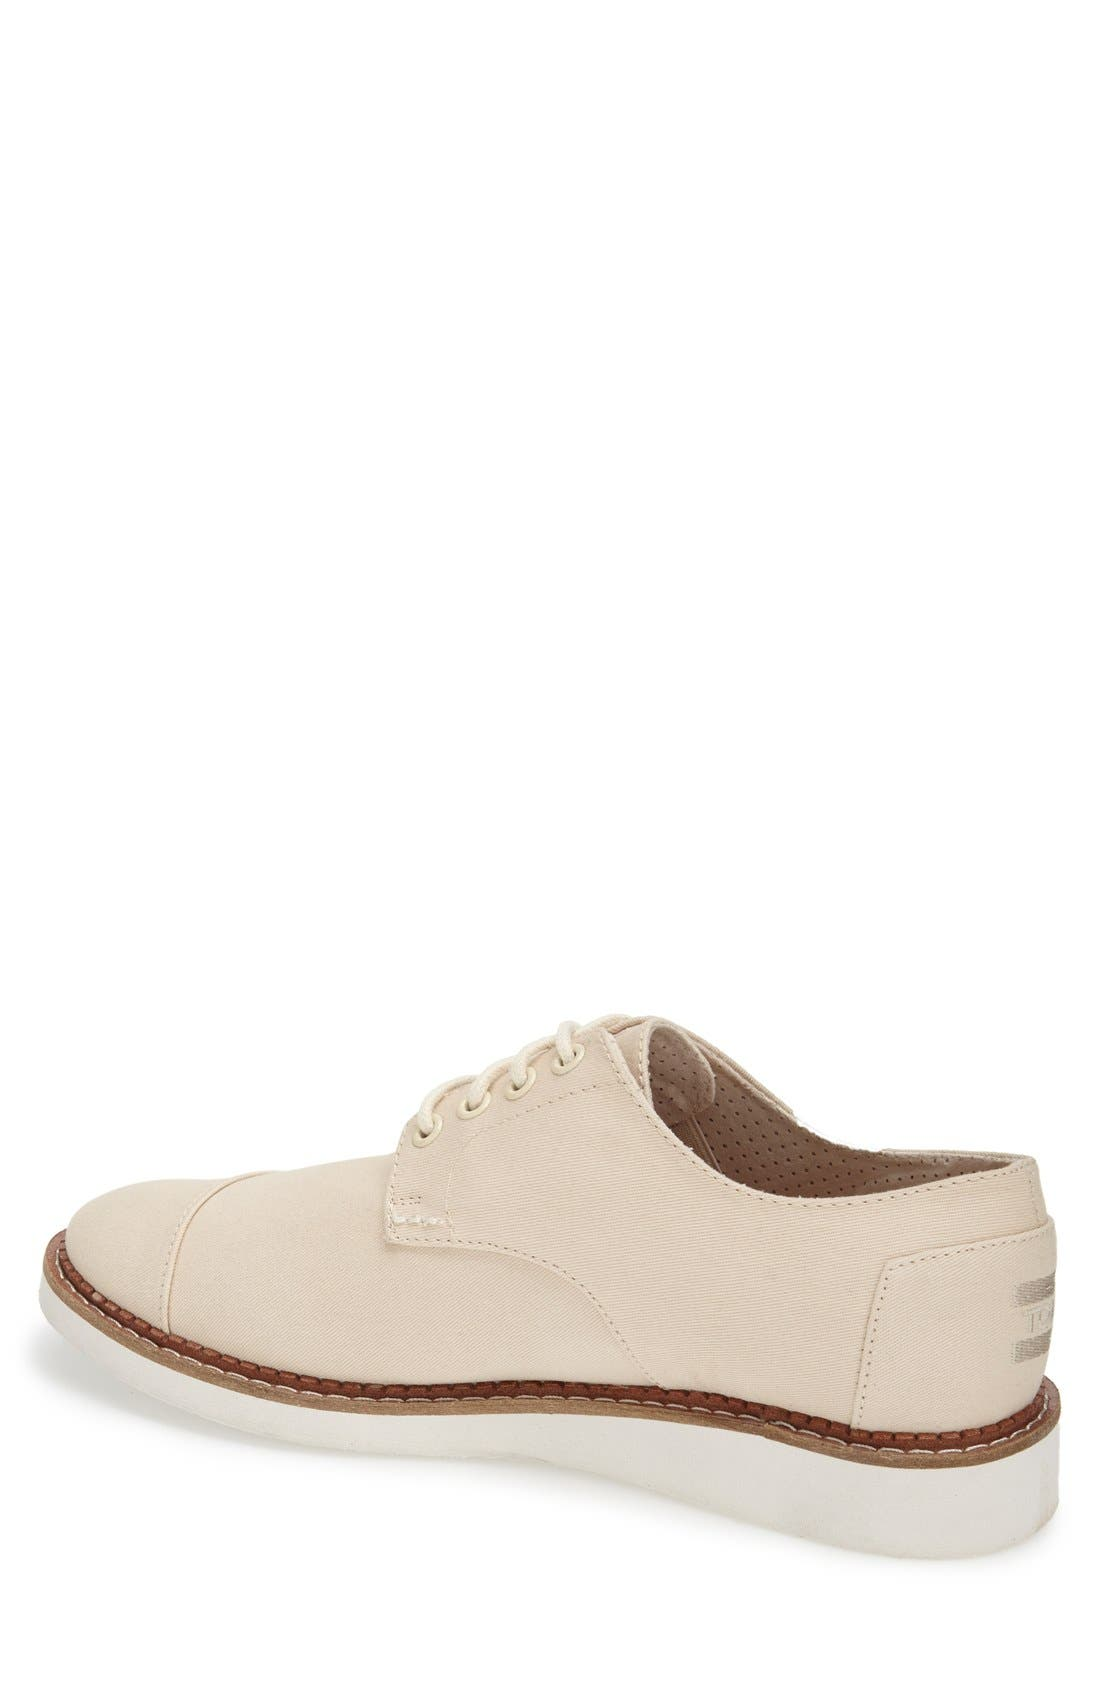 'Classic Brogue' Cotton Twill Derby,                             Alternate thumbnail 24, color,